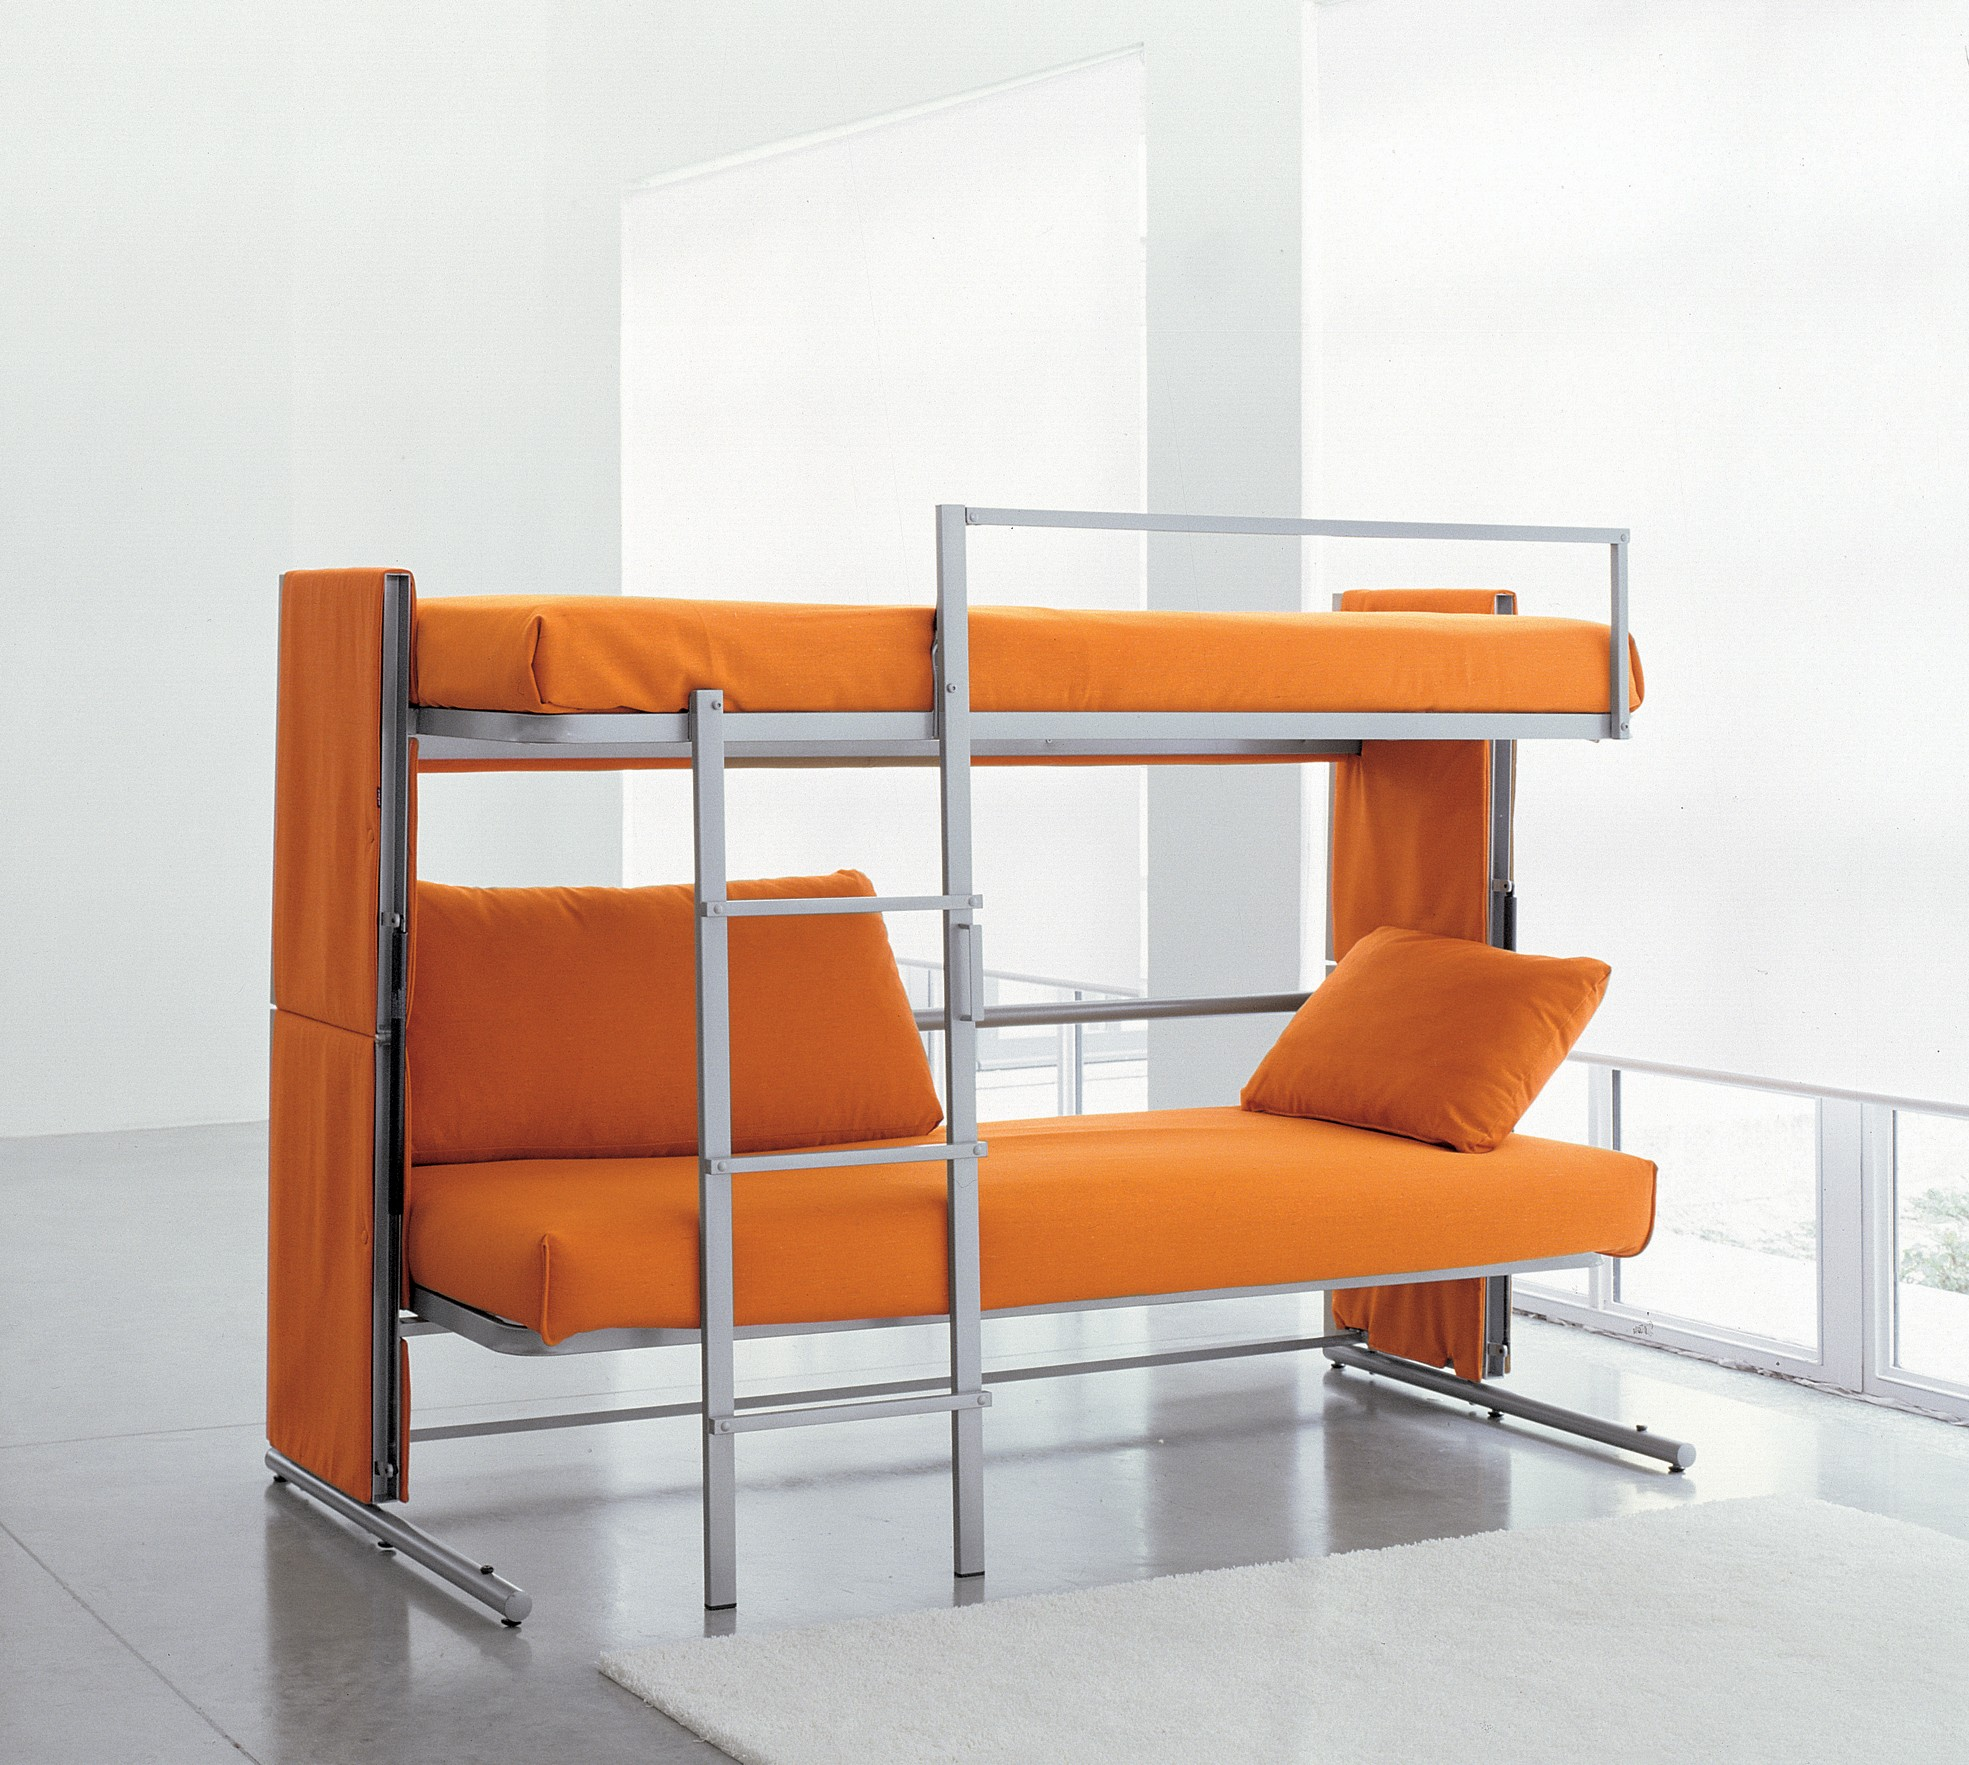 Bunk Bed sofa Finest Doc A sofa Bed that Converts In to A Bunk Bed In Two Secounds Concept